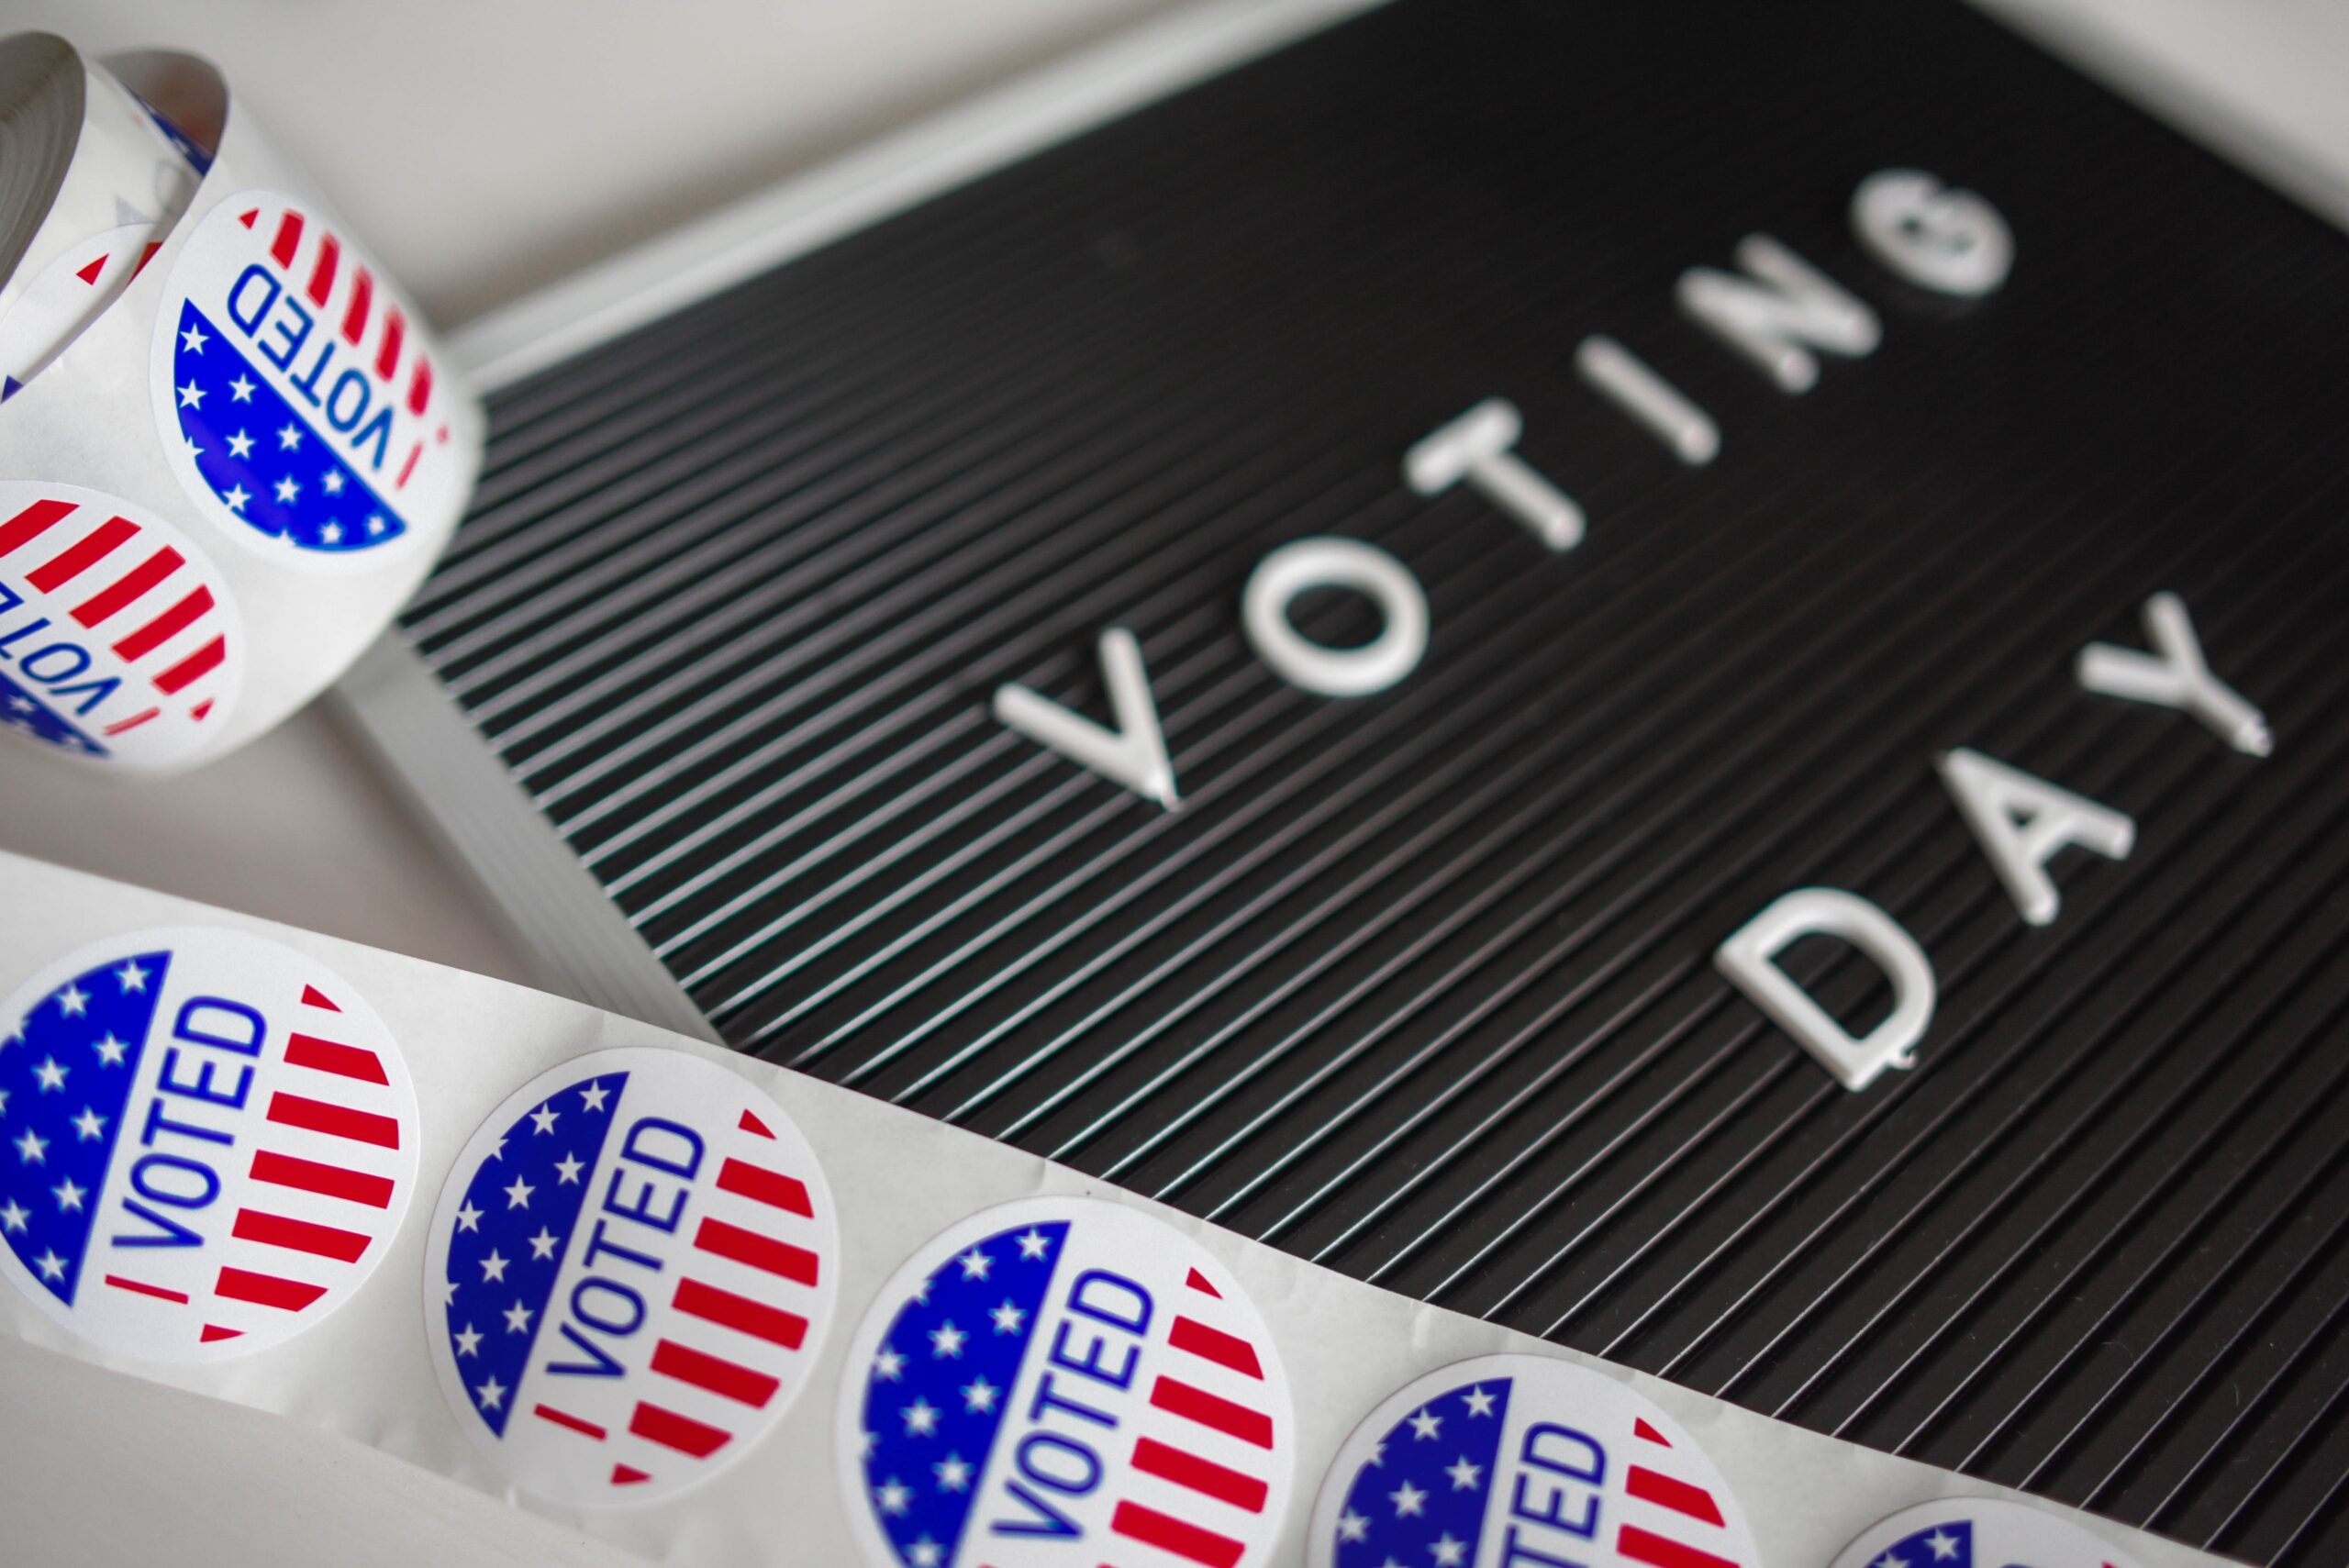 i-voted-sticker-lot-1550340